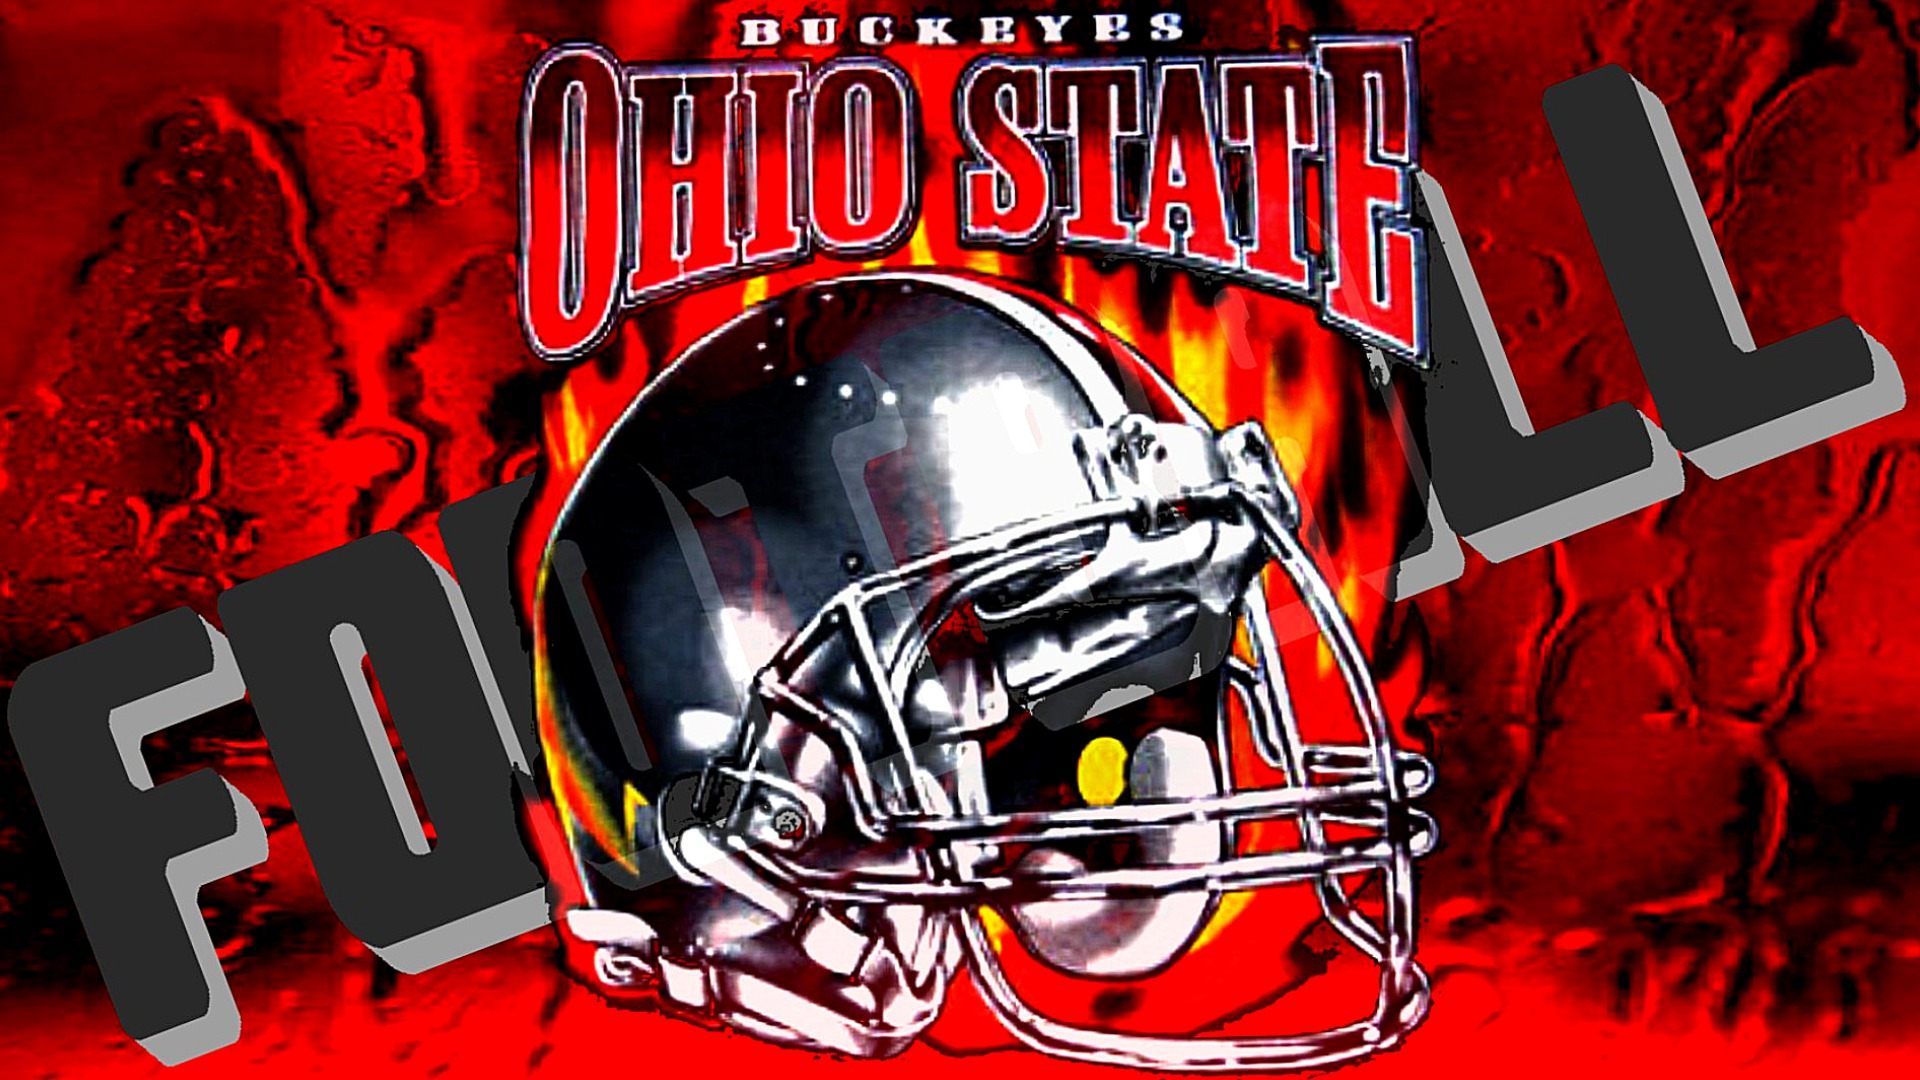 BUCKEYES OHIO STATE FOOTBALL wallpaper   ForWallpapercom 1920x1080